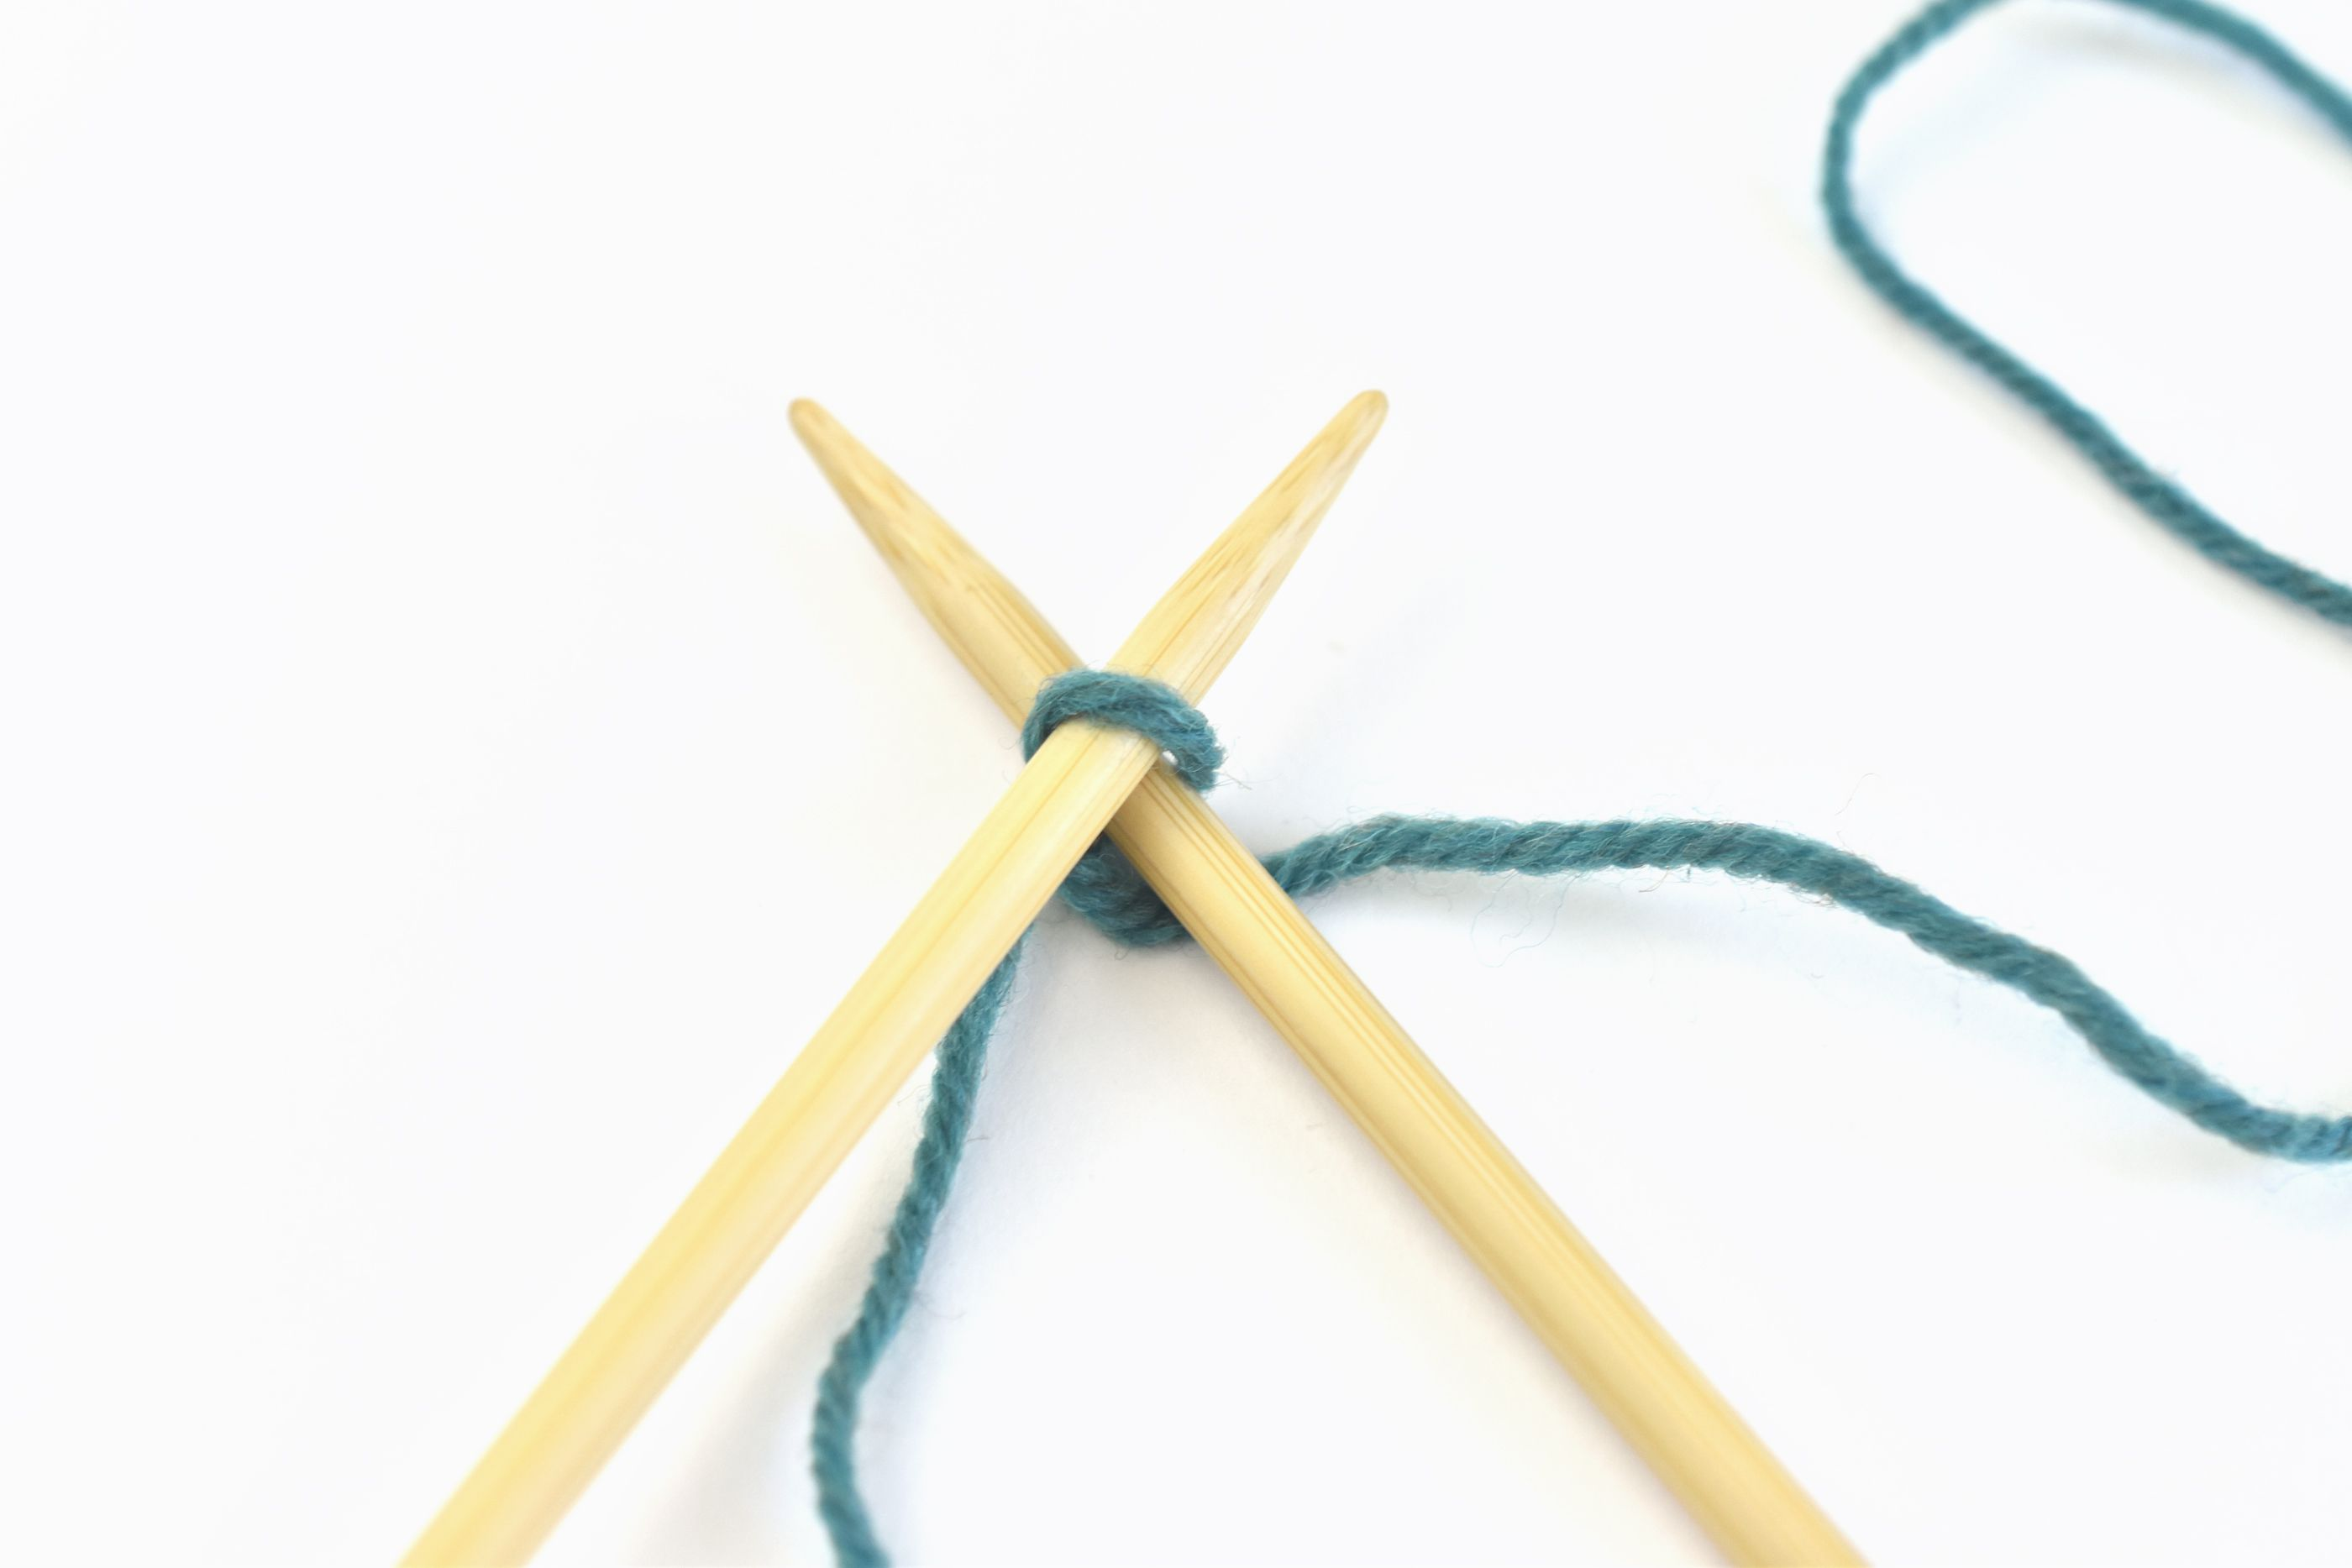 Insert the Right Needle in the Slip Knot